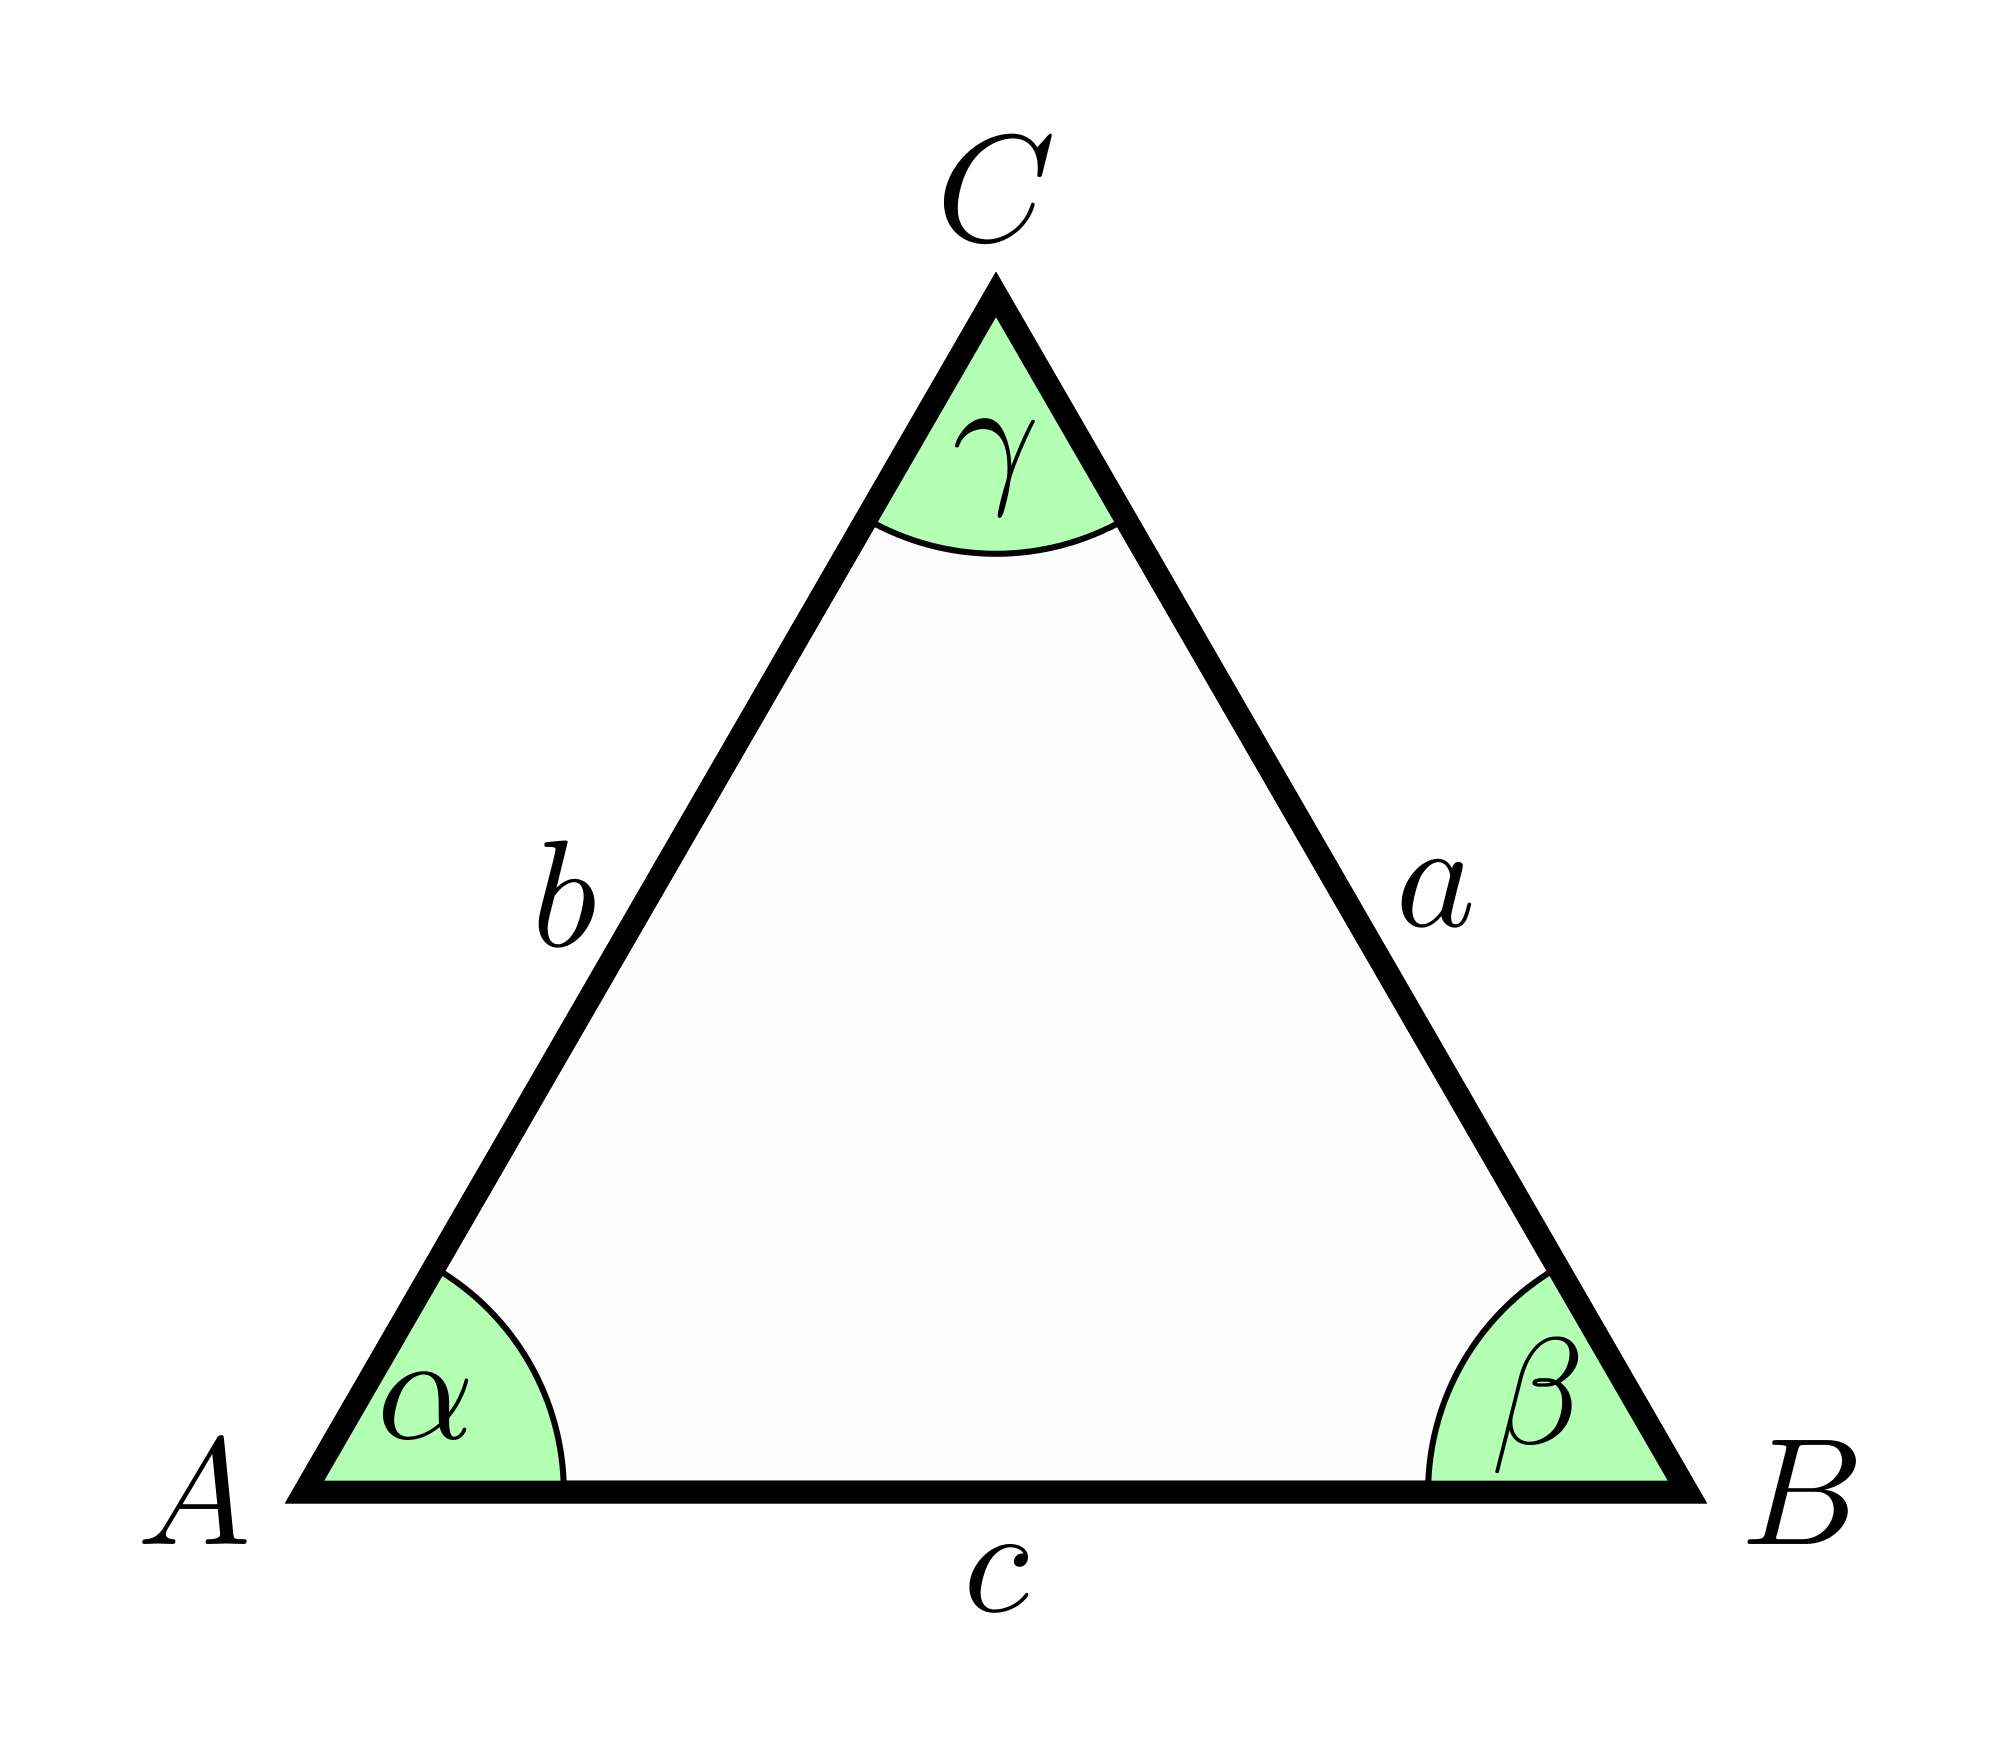 Angle And 5 60 Cm Degree 3 Triangle Length